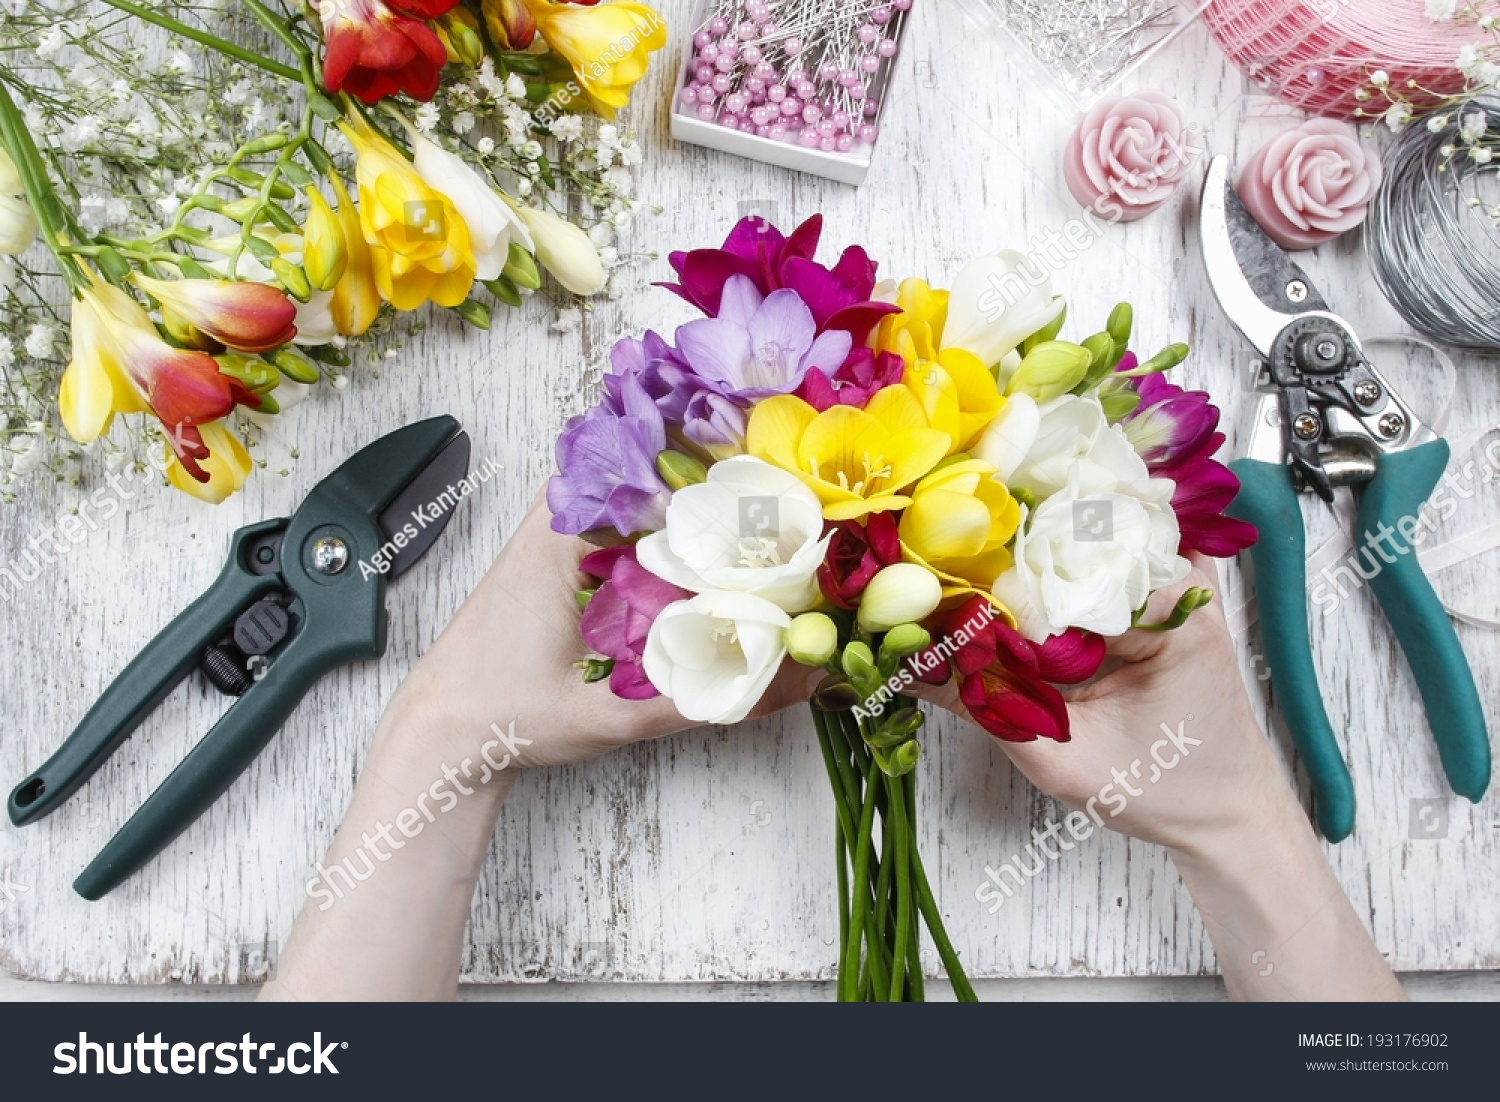 Florist at work woman making bouquet of freesia flowers ez canvas woman making bouquet of freesia flowers ez canvas izmirmasajfo